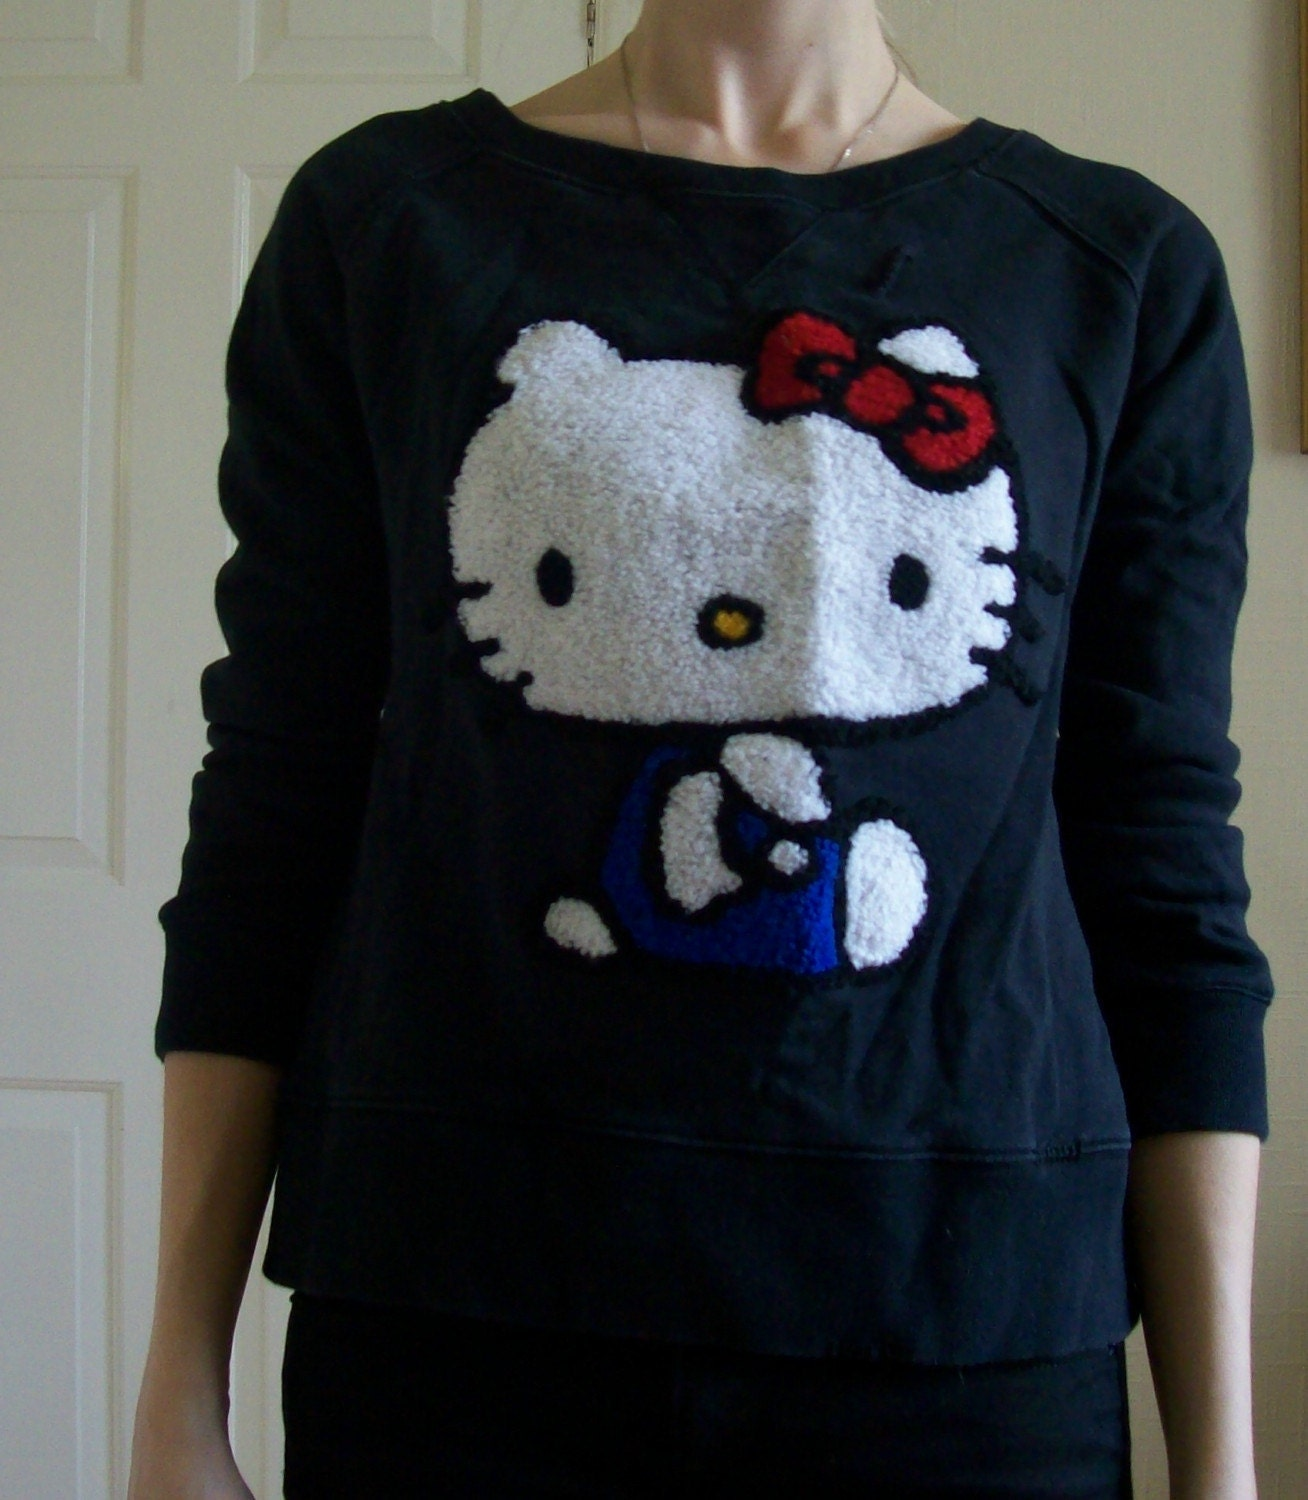 Knitting Pattern For Hello Kitty Sweater : Super cute hello kitty sweater xs-s by holymess on Etsy